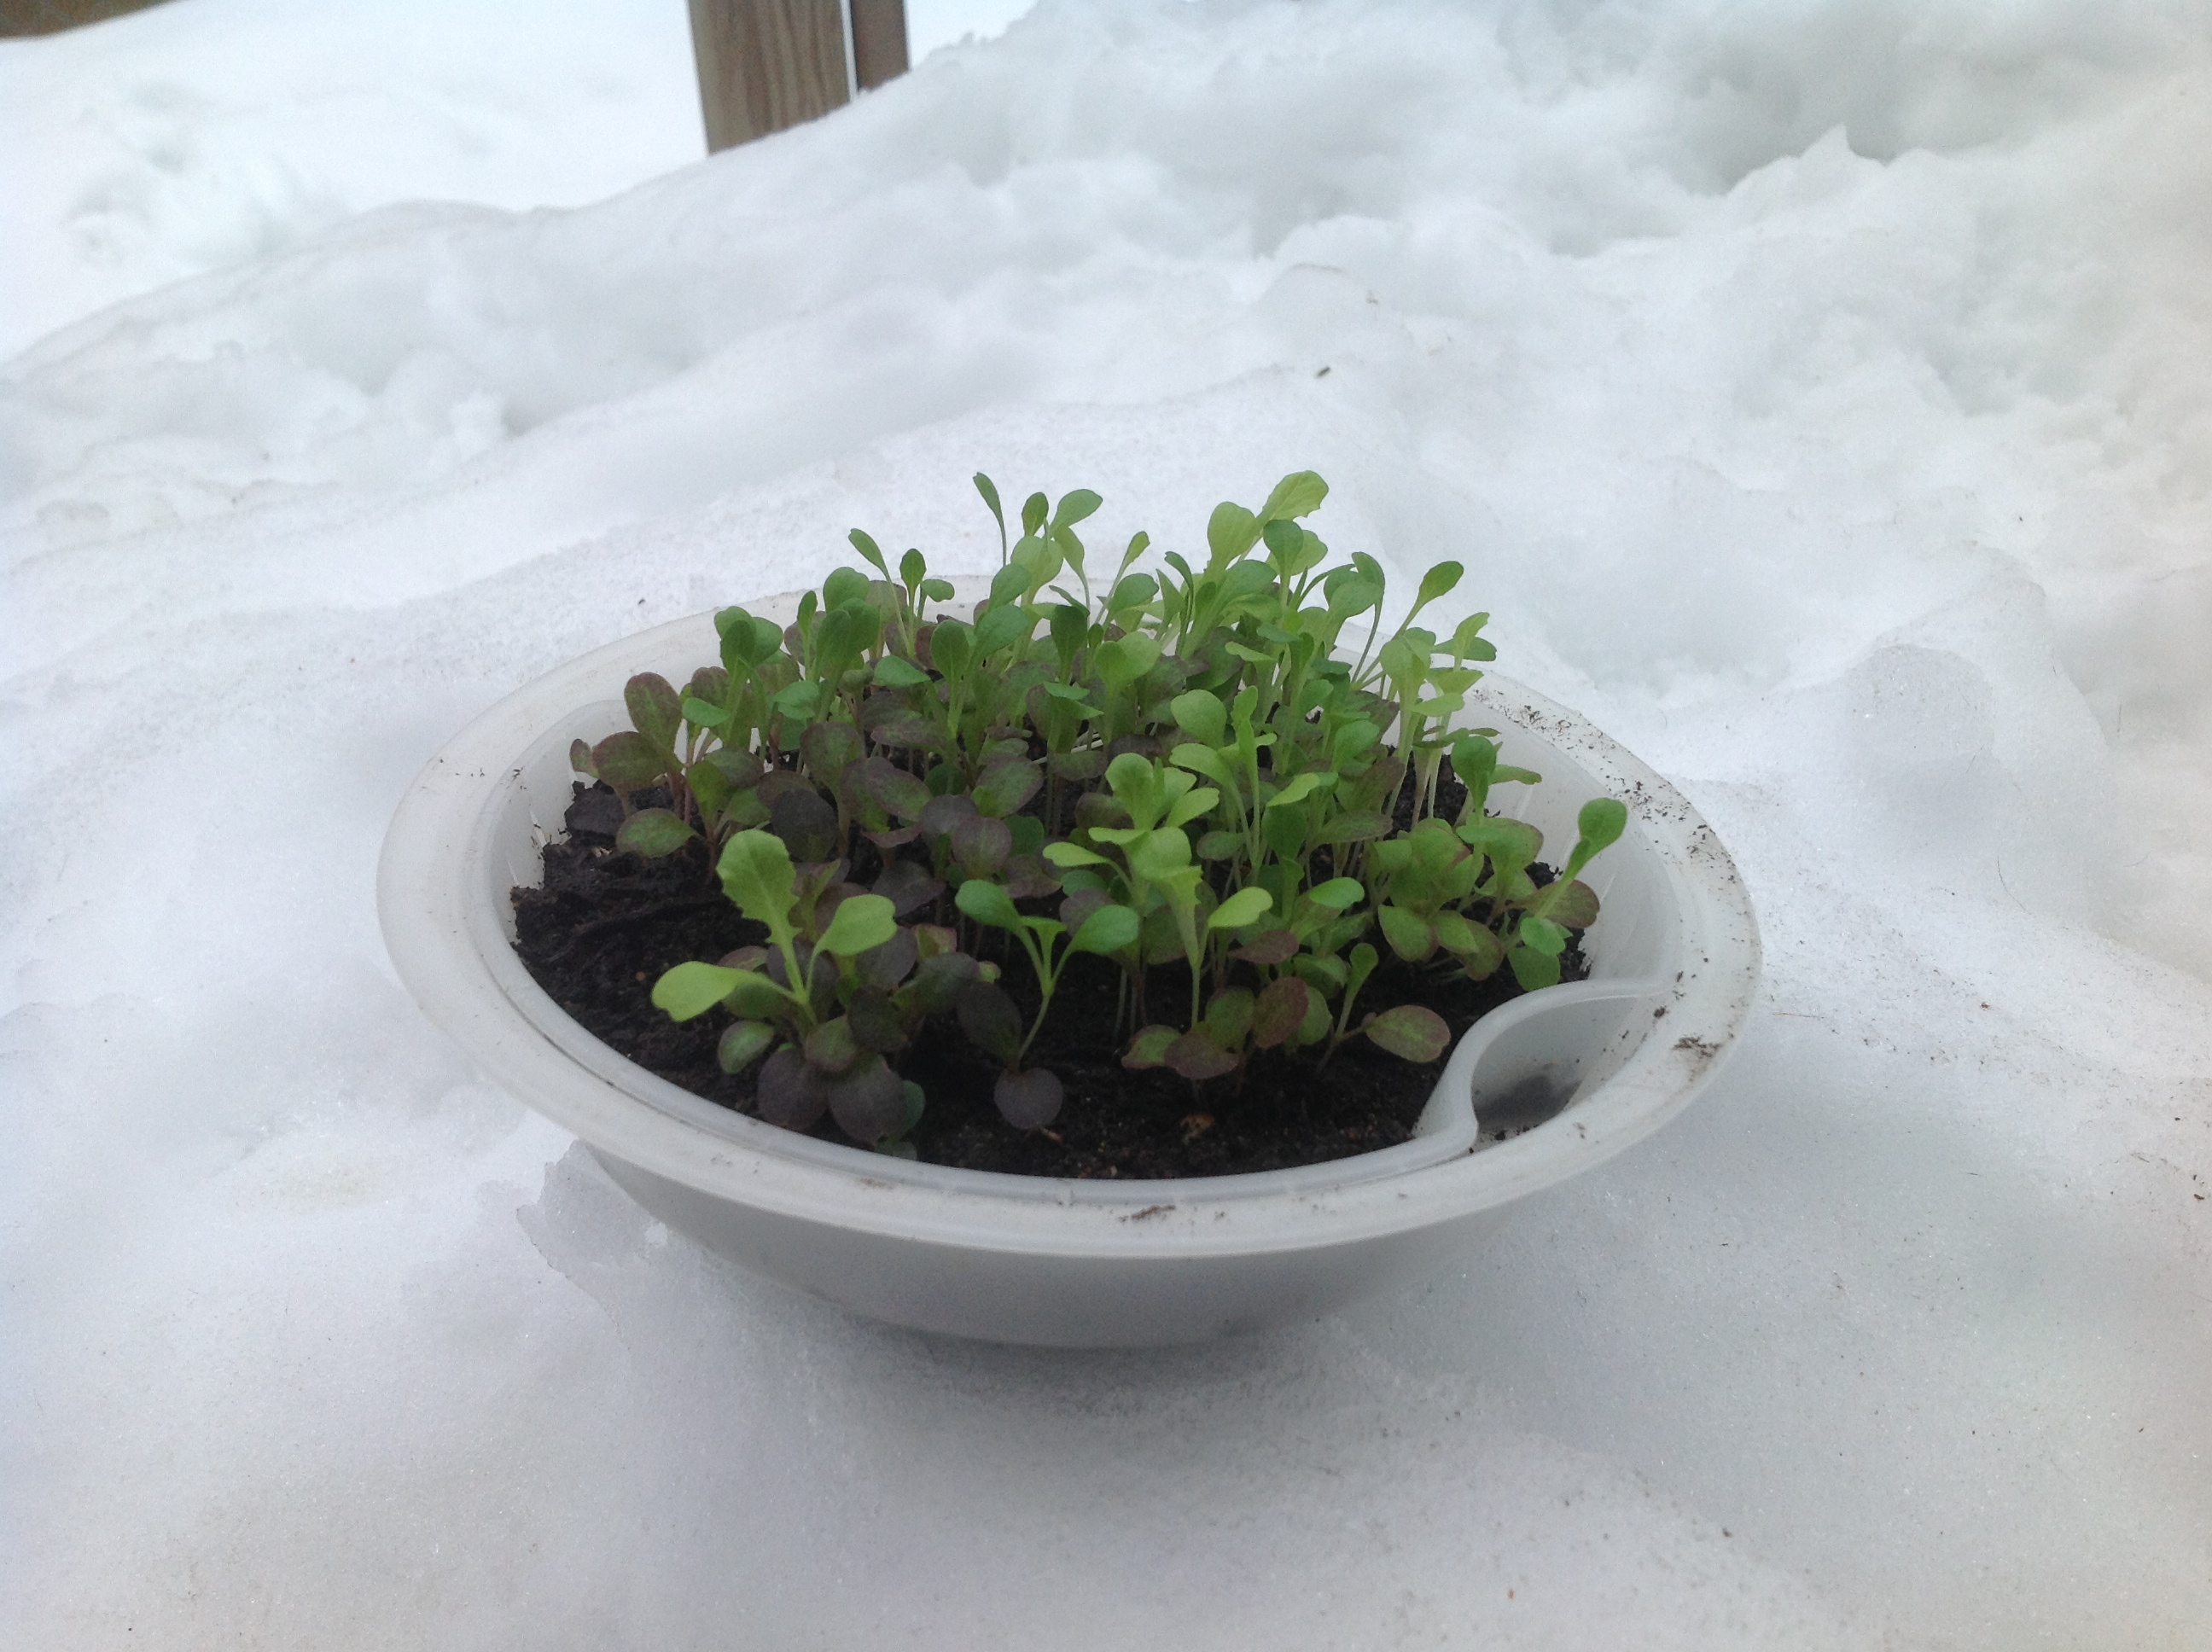 Lettuce in the steamer sitting on the snow